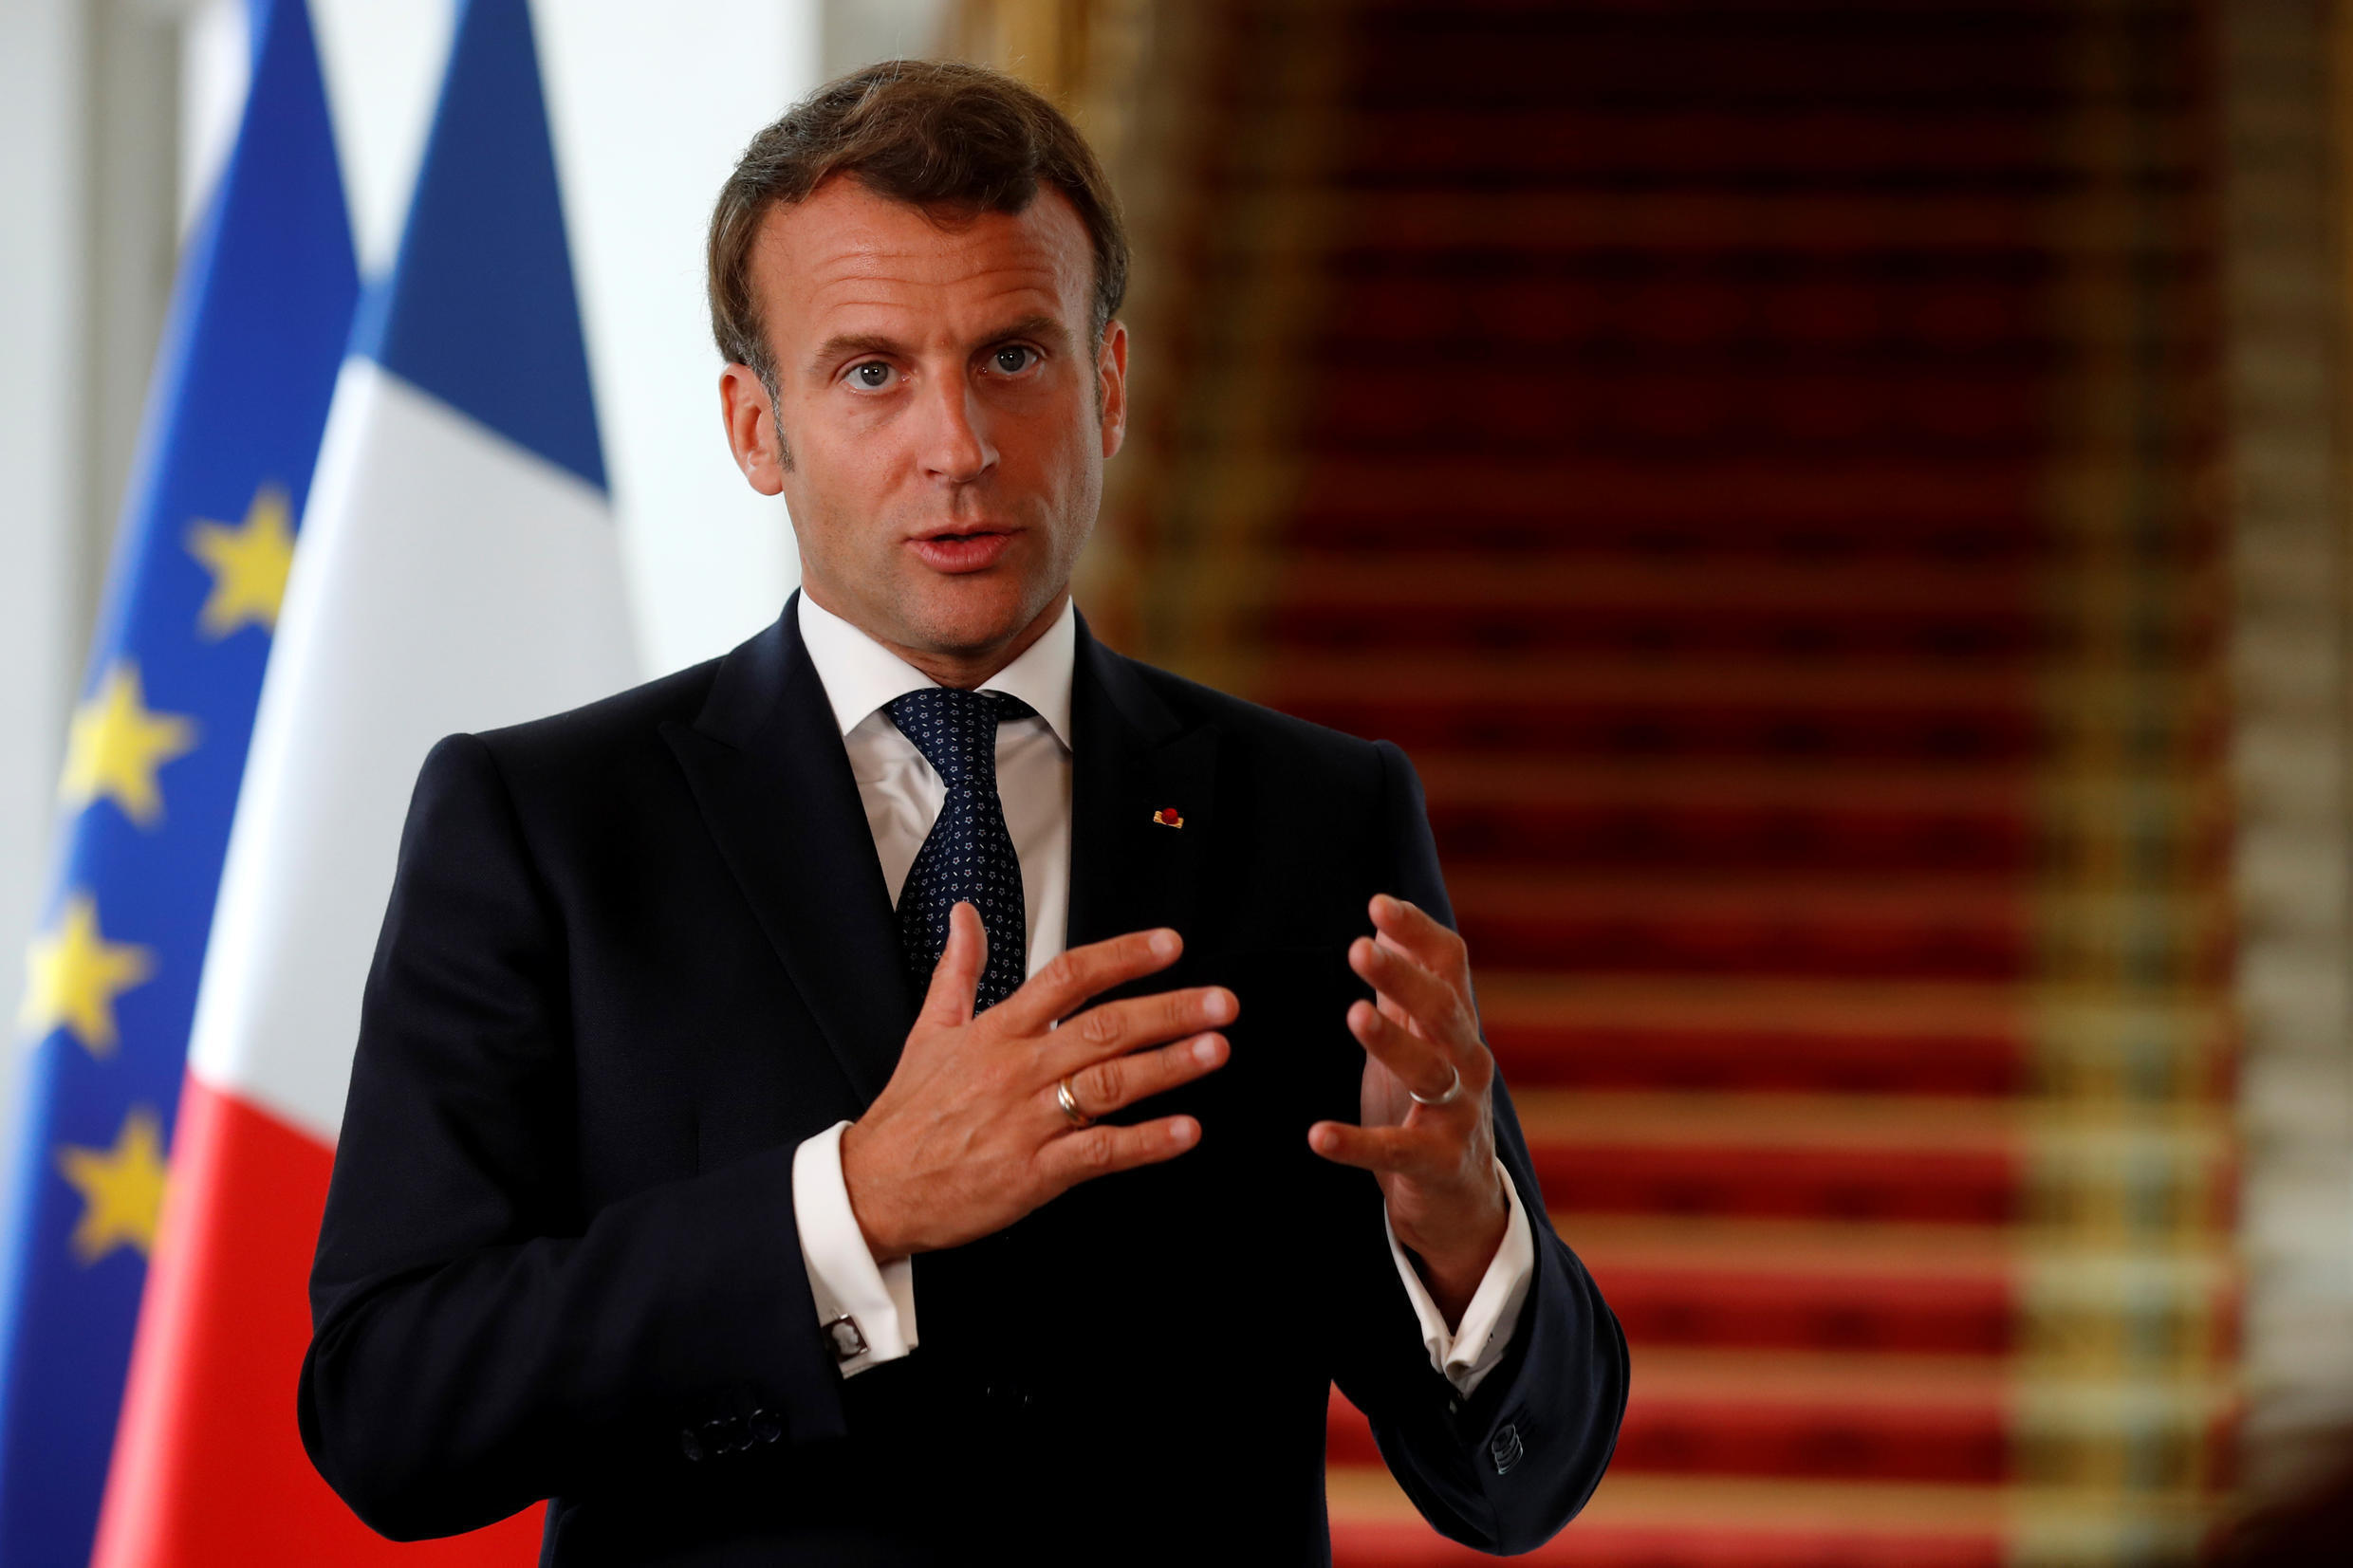 French President Emmanuel Macron (pictured May 4, 2020) said in a televised interview that officials should know by early June 2020 if France has averted a new flare-up of COVID-19